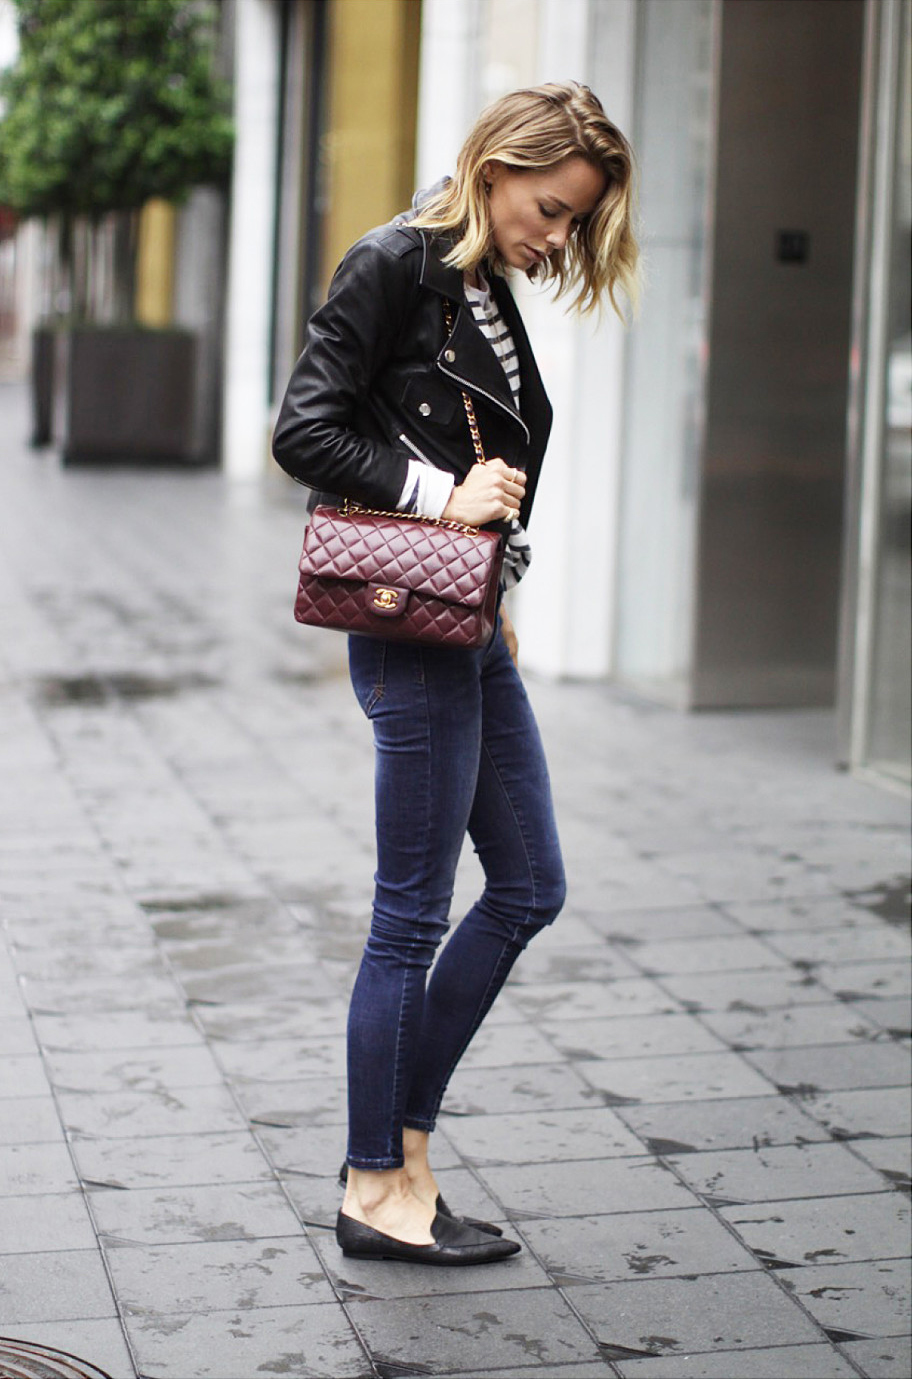 Leather jacket street style - Anine Bing Is Wearing Jeans Black Cropped Leather Jacket Loafers And Striped Top From